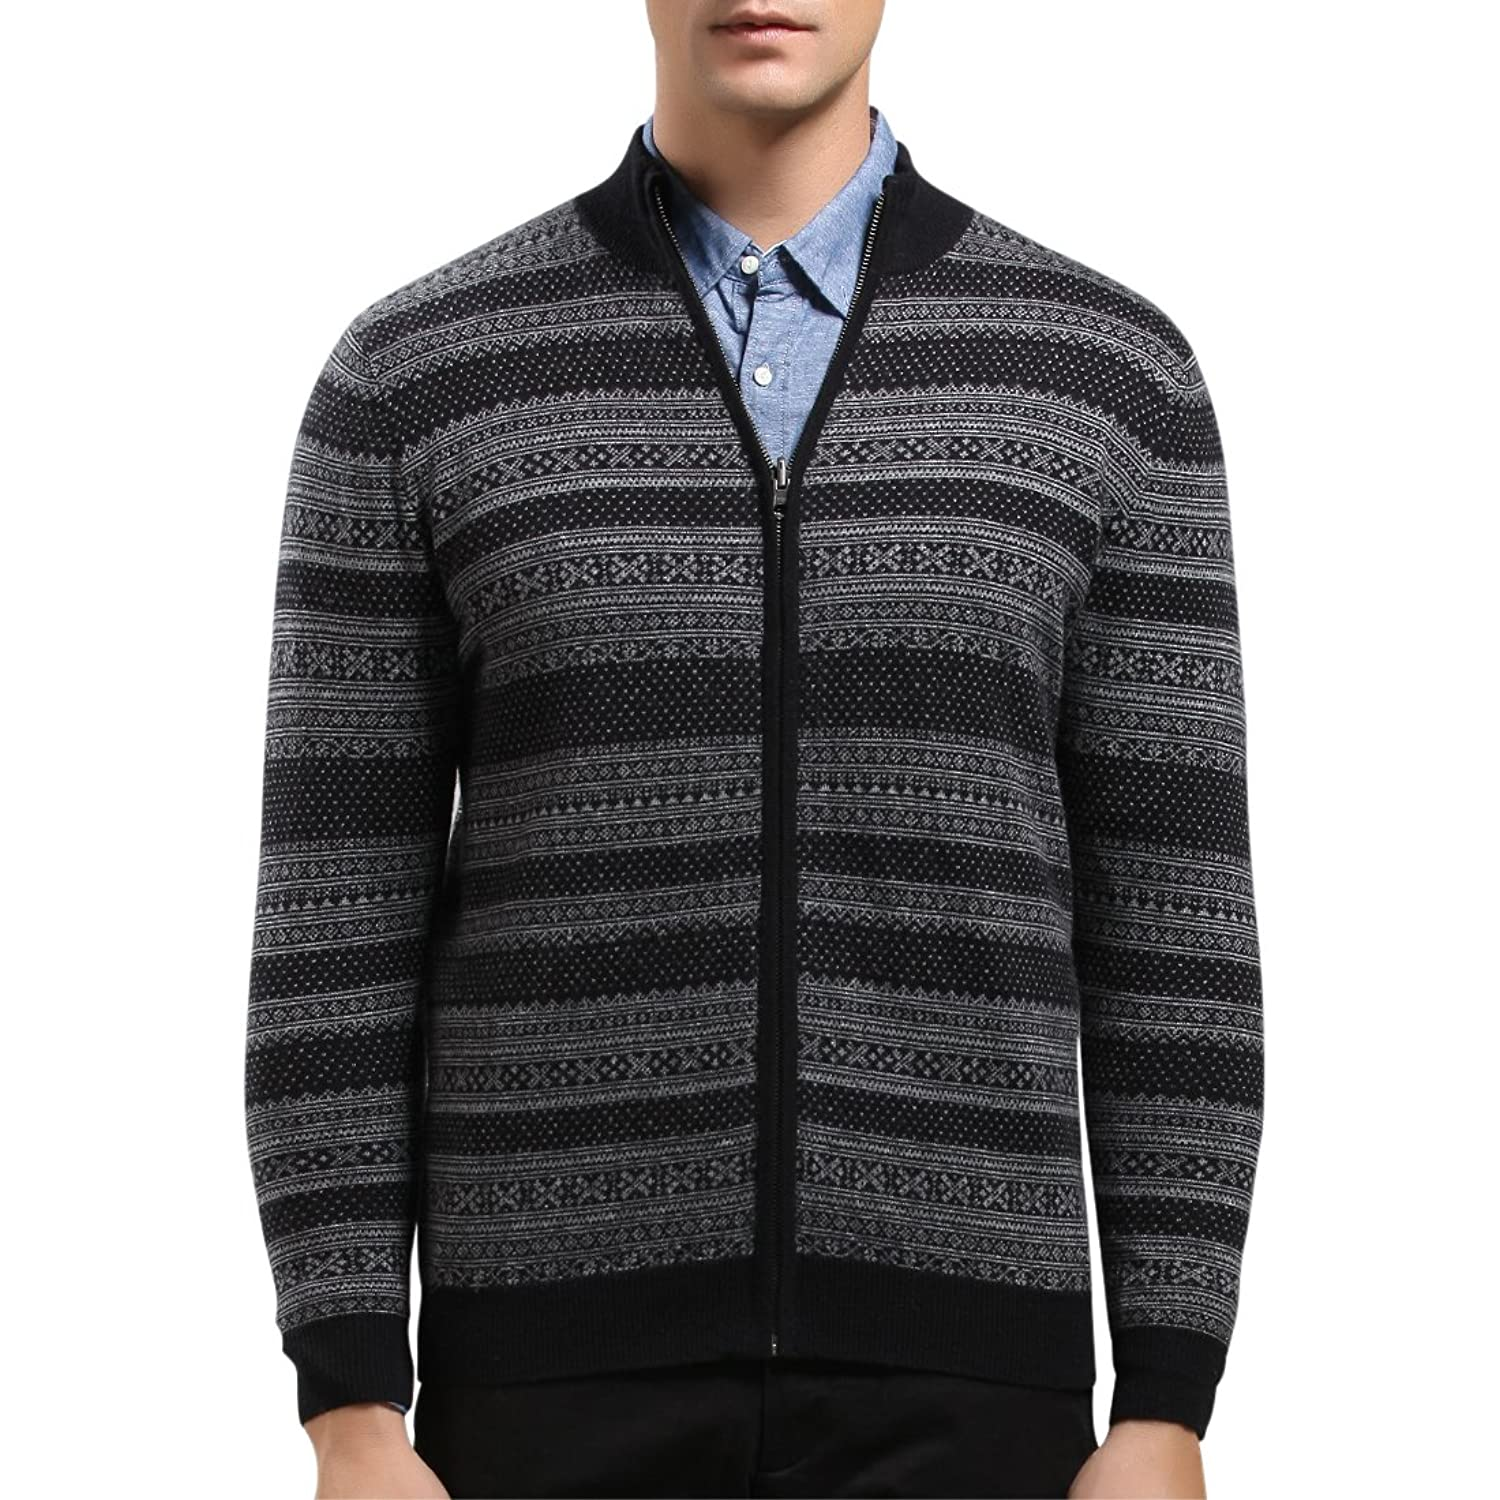 SpringAir Mens Knitted Cardigan Pure Cashmre Nordic Style High Neck Zipper Jumper